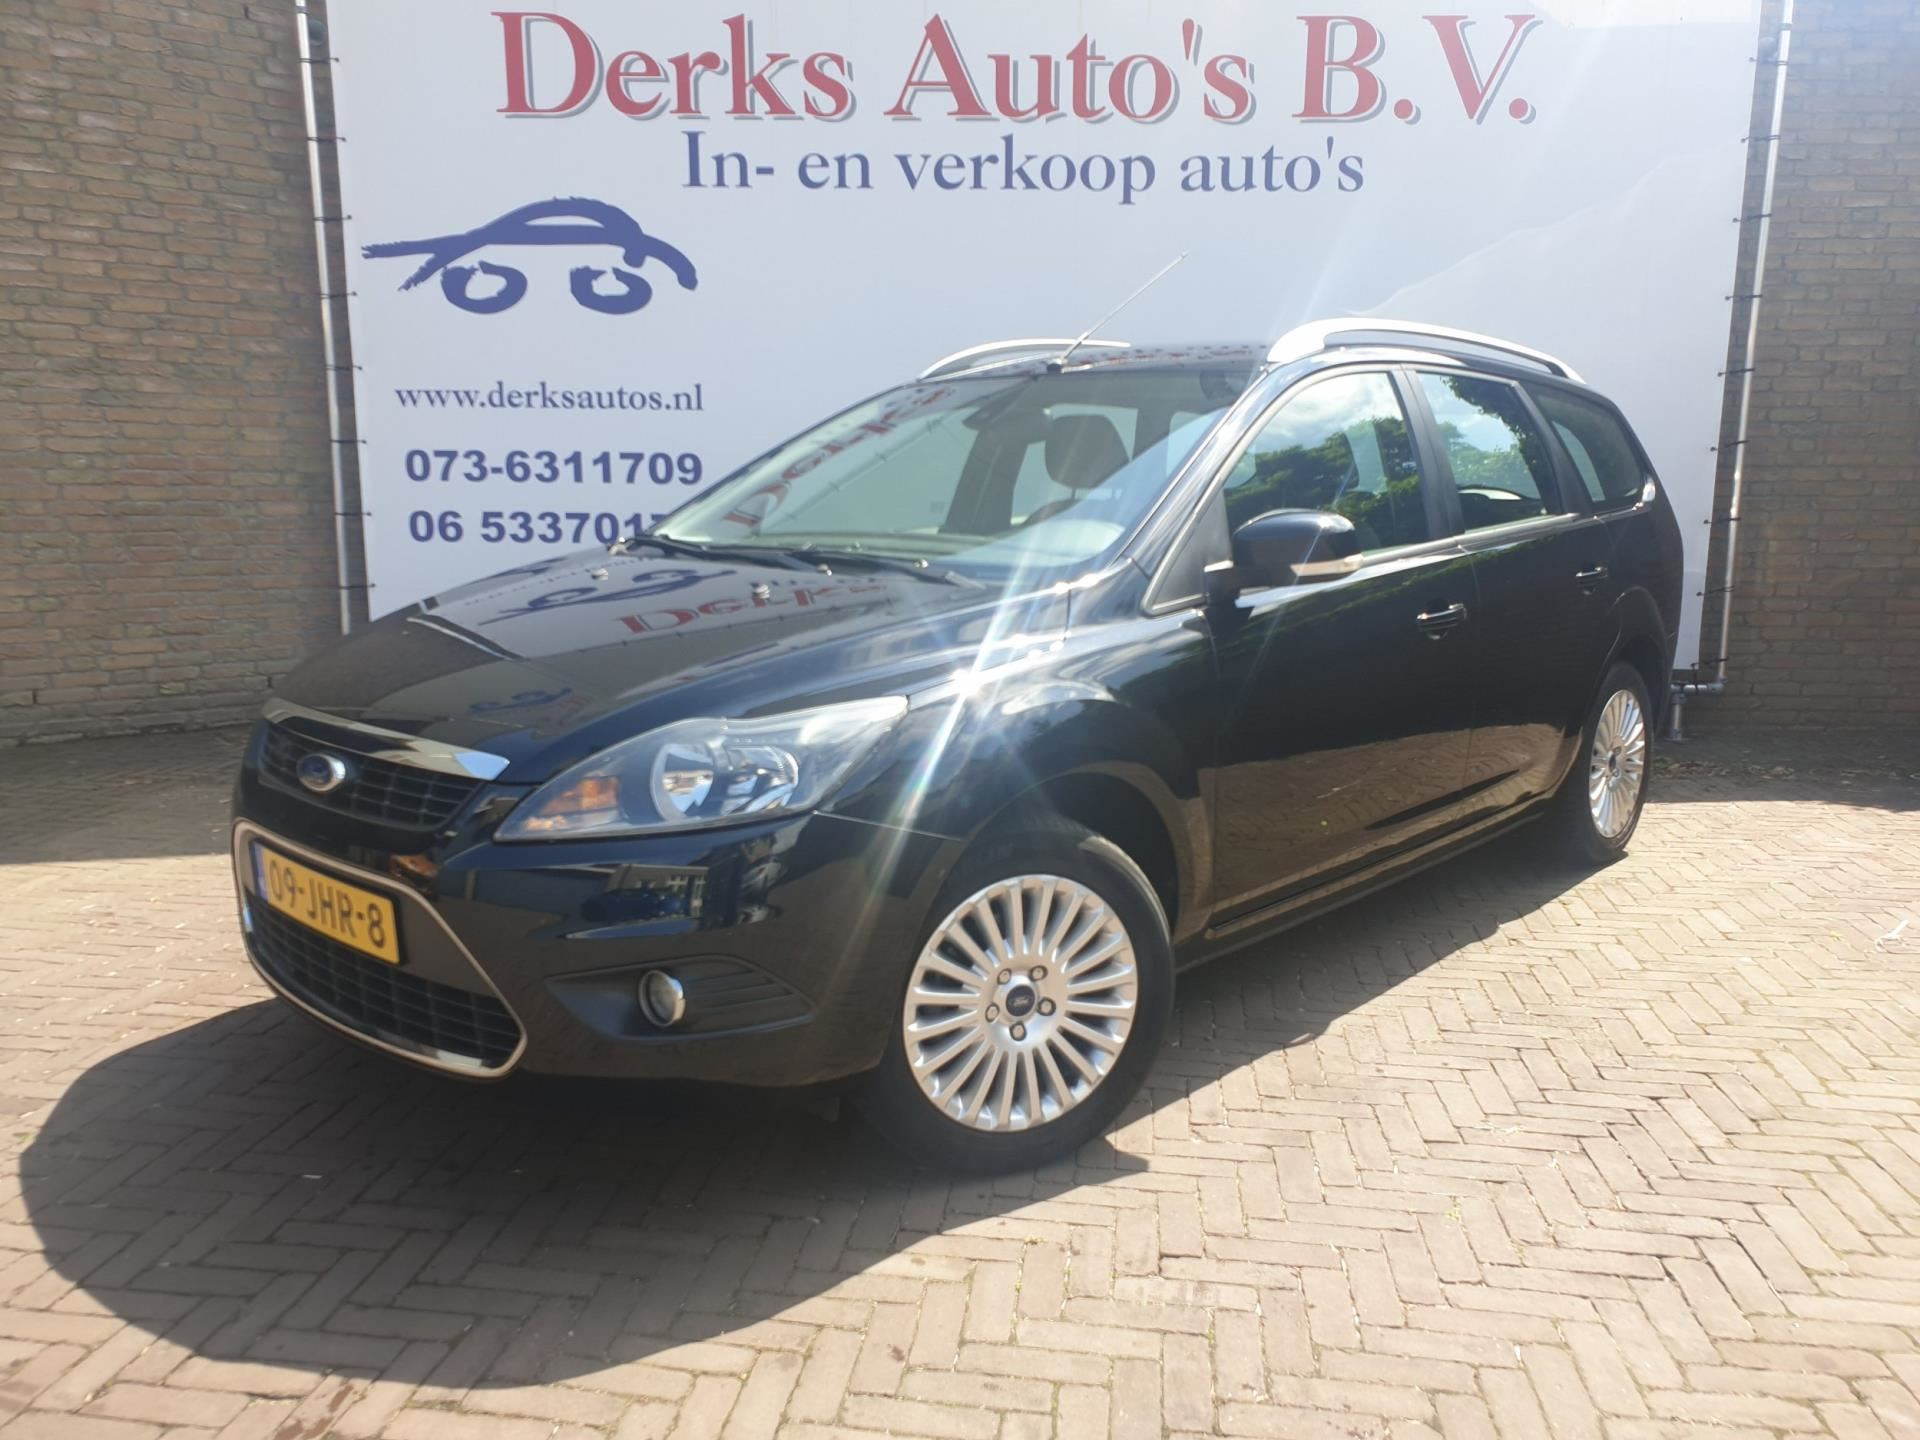 Ford Focus Wagon occasion - Derks Auto's B.V.